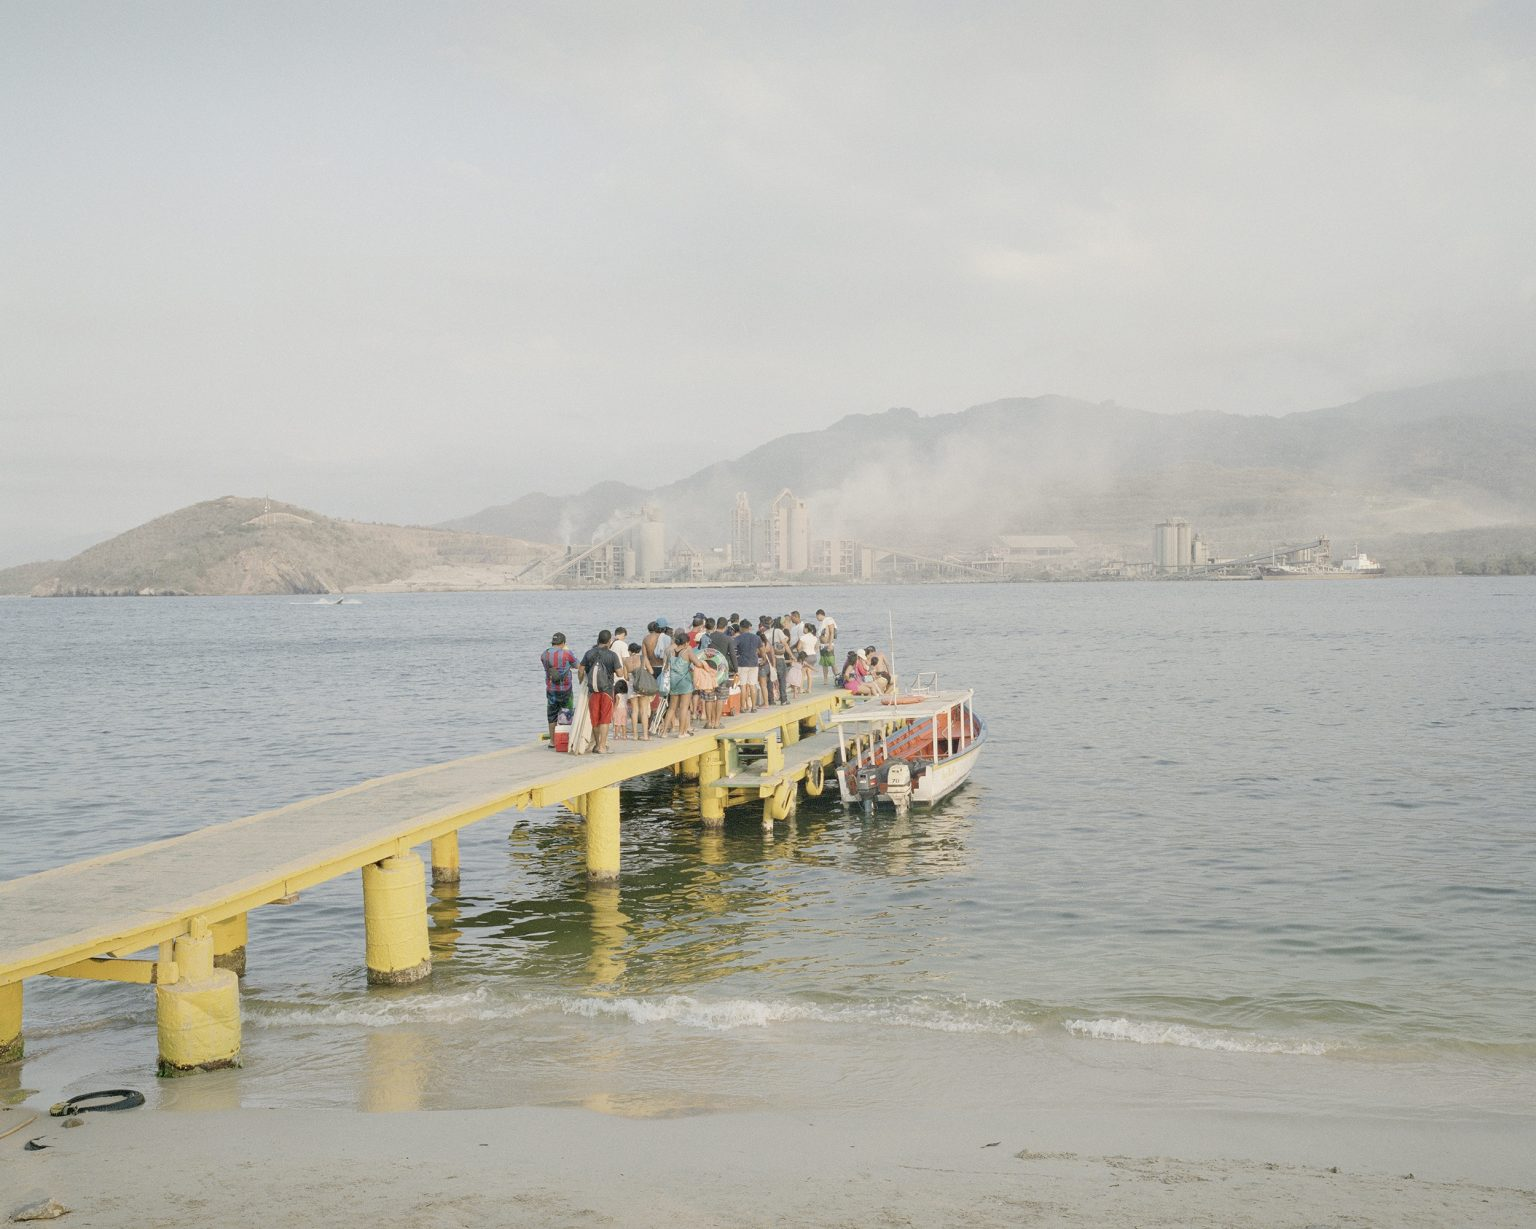 People waiting a boat after a day on the beach in the Isla de la Plata.